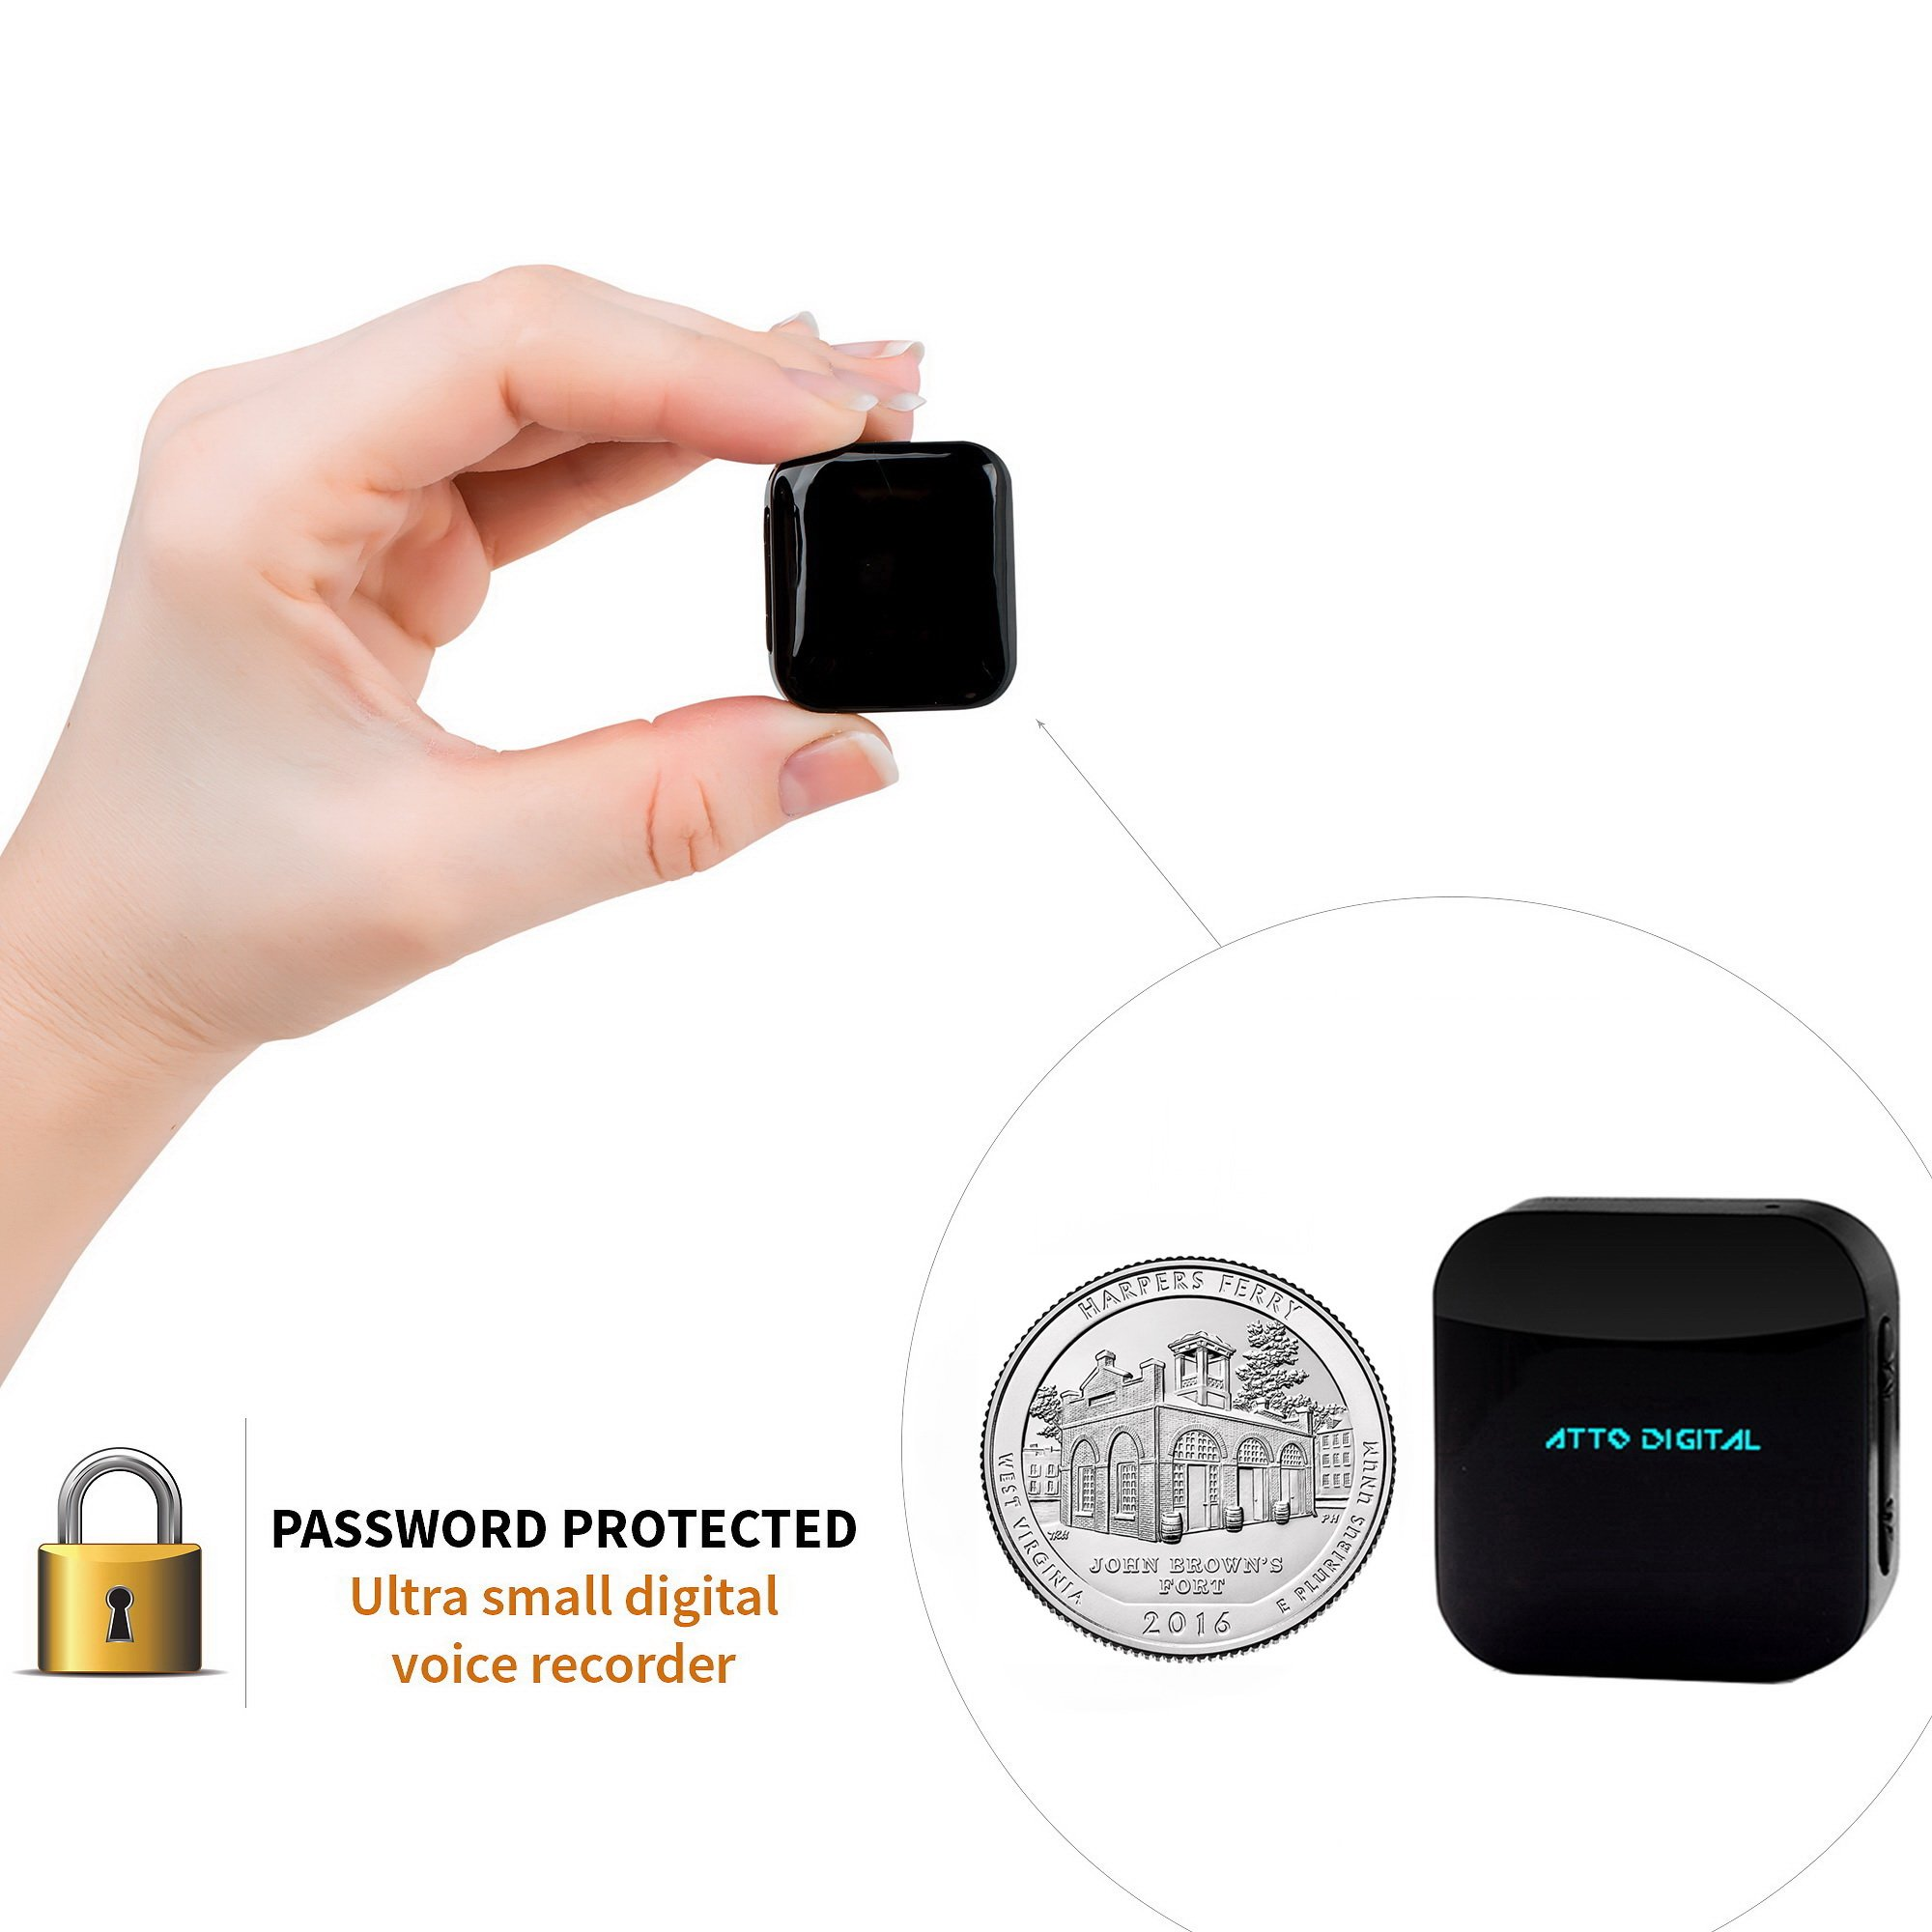 Mini Voice Recorder - Voice Activated Recording - 286 Hours Recordings Capacity - up to 24 Hours Battery Life - Password Protection - 2018 Upgrade - aTTo digital